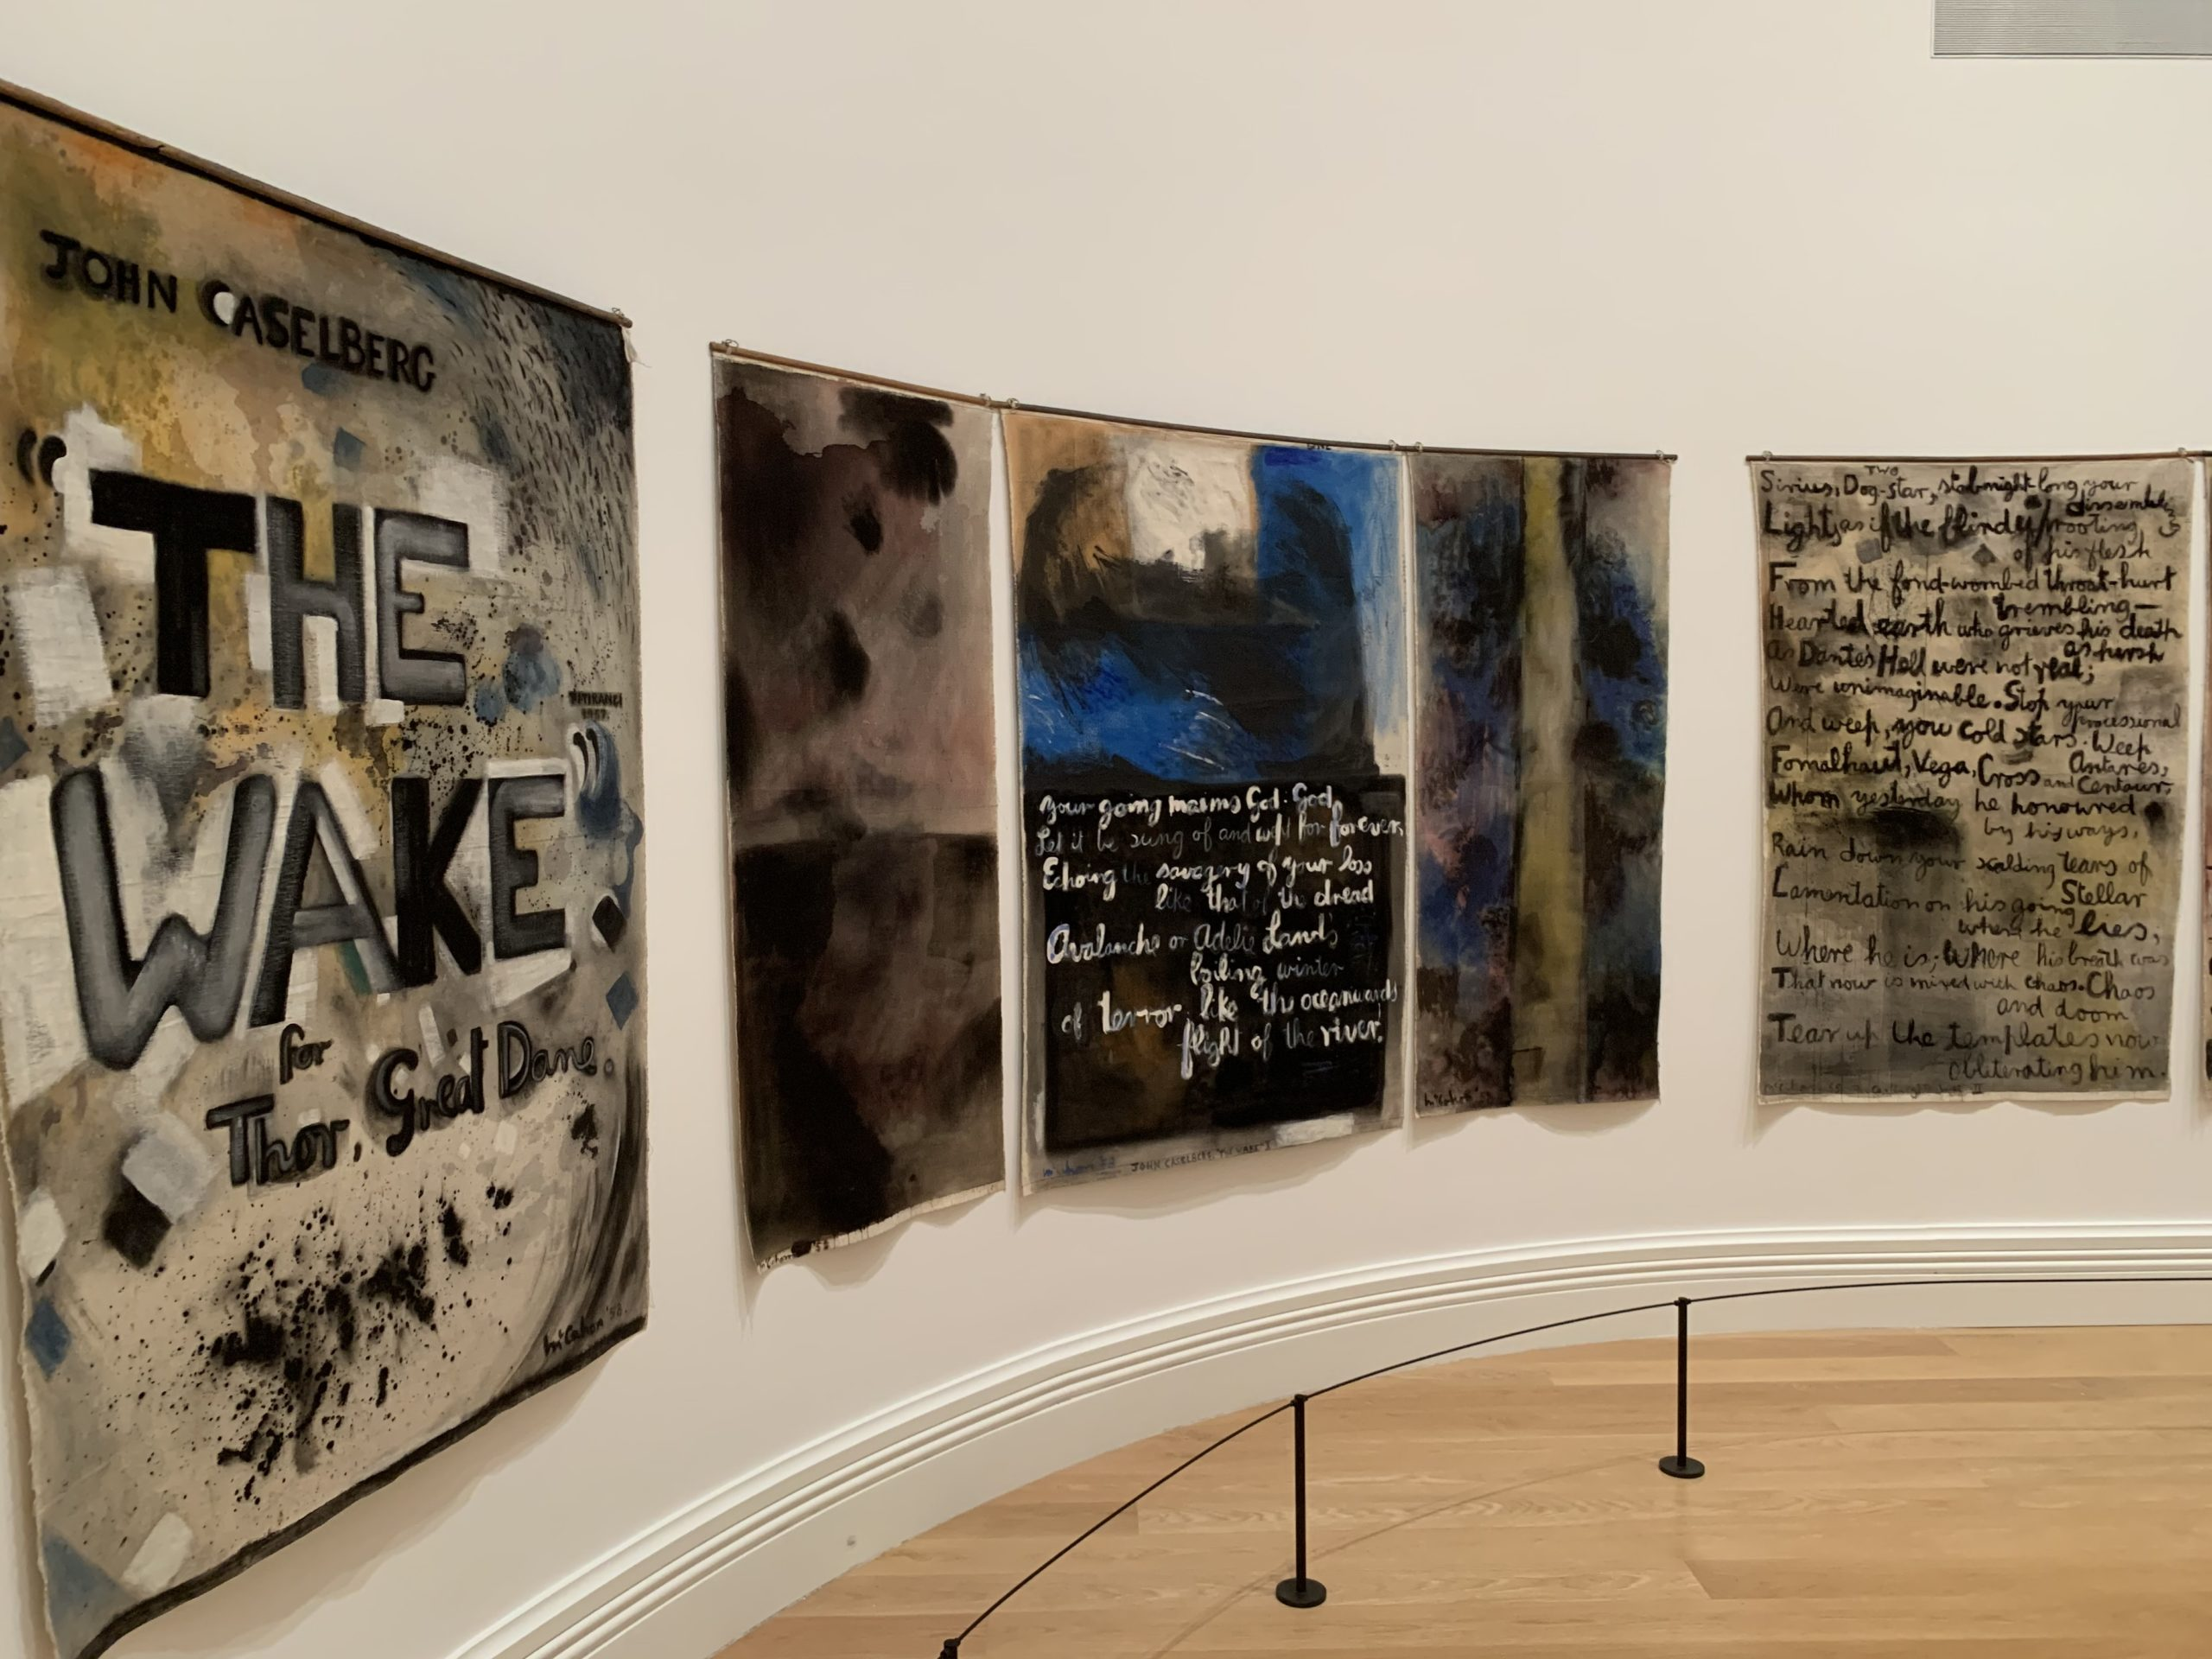 Colin McCahon, <em>'The Wake': A Poem in the Forest</em>, 1958, Auckland Art Gallery